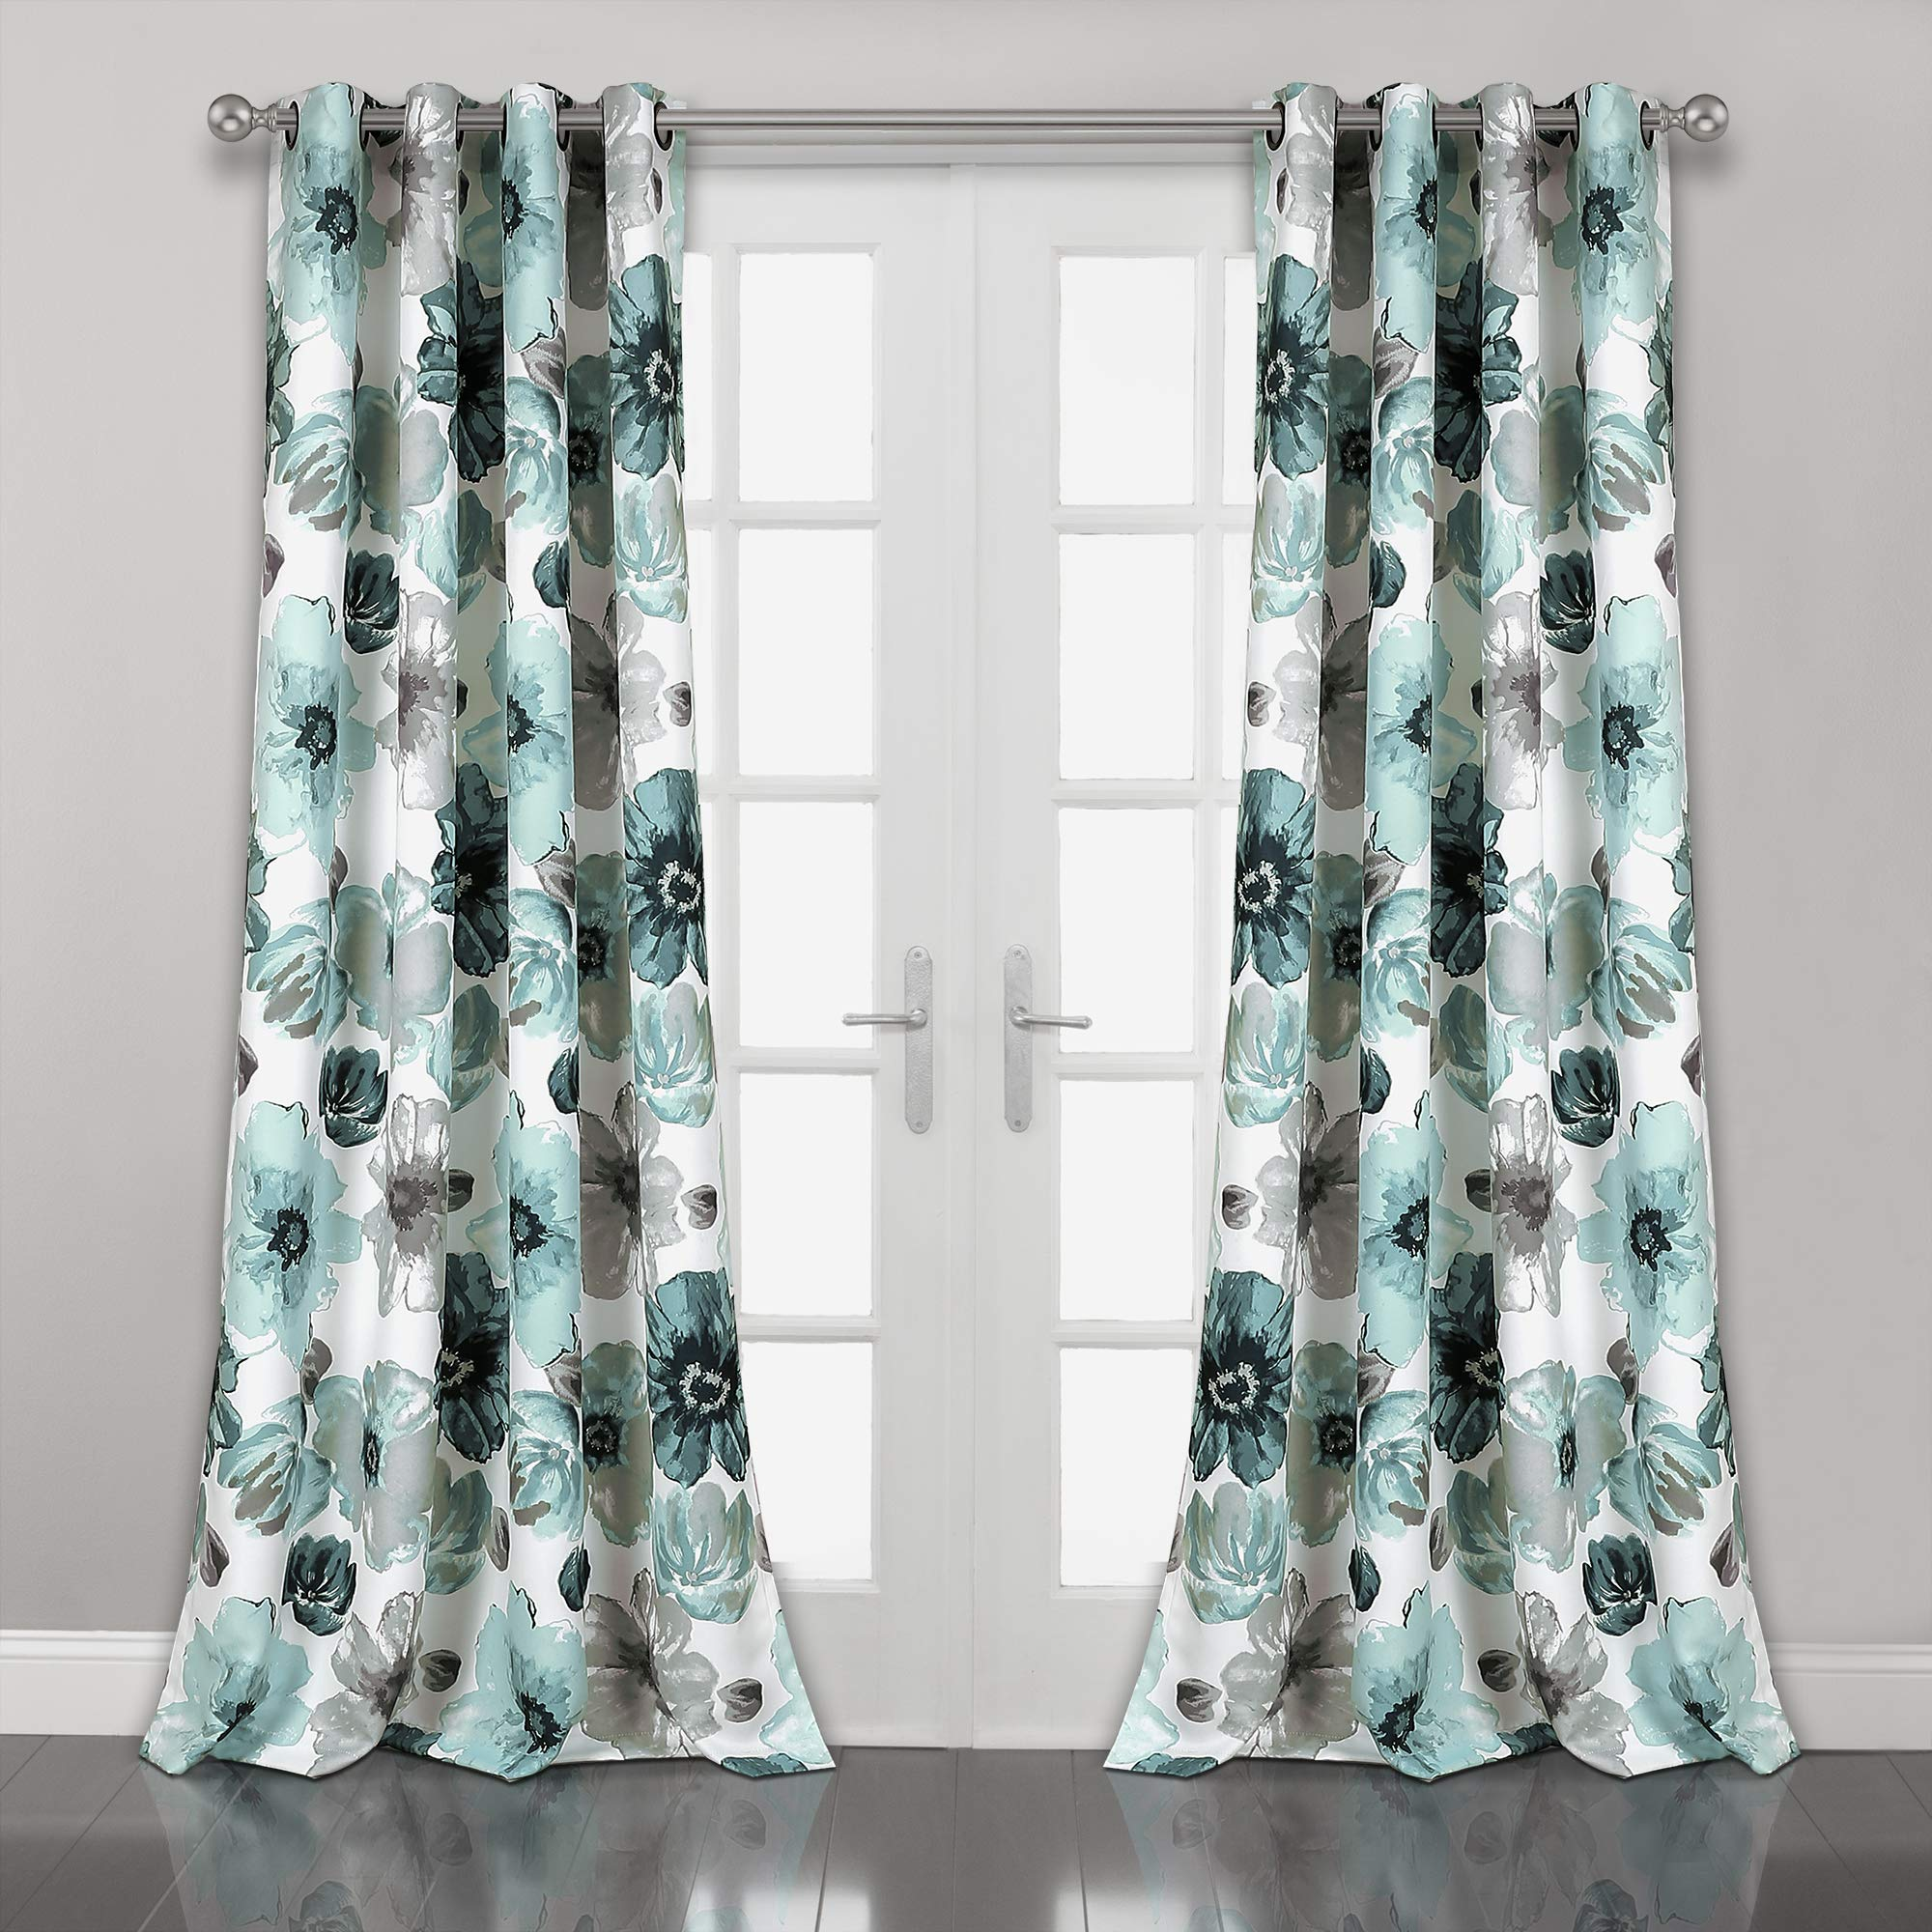 Lush Decor Leah Floral Room Darkening Window Panel Curtain Set for Living, Dining, Bedroom (Pair), 108'' x 52'' Blue, L by Lush Decor